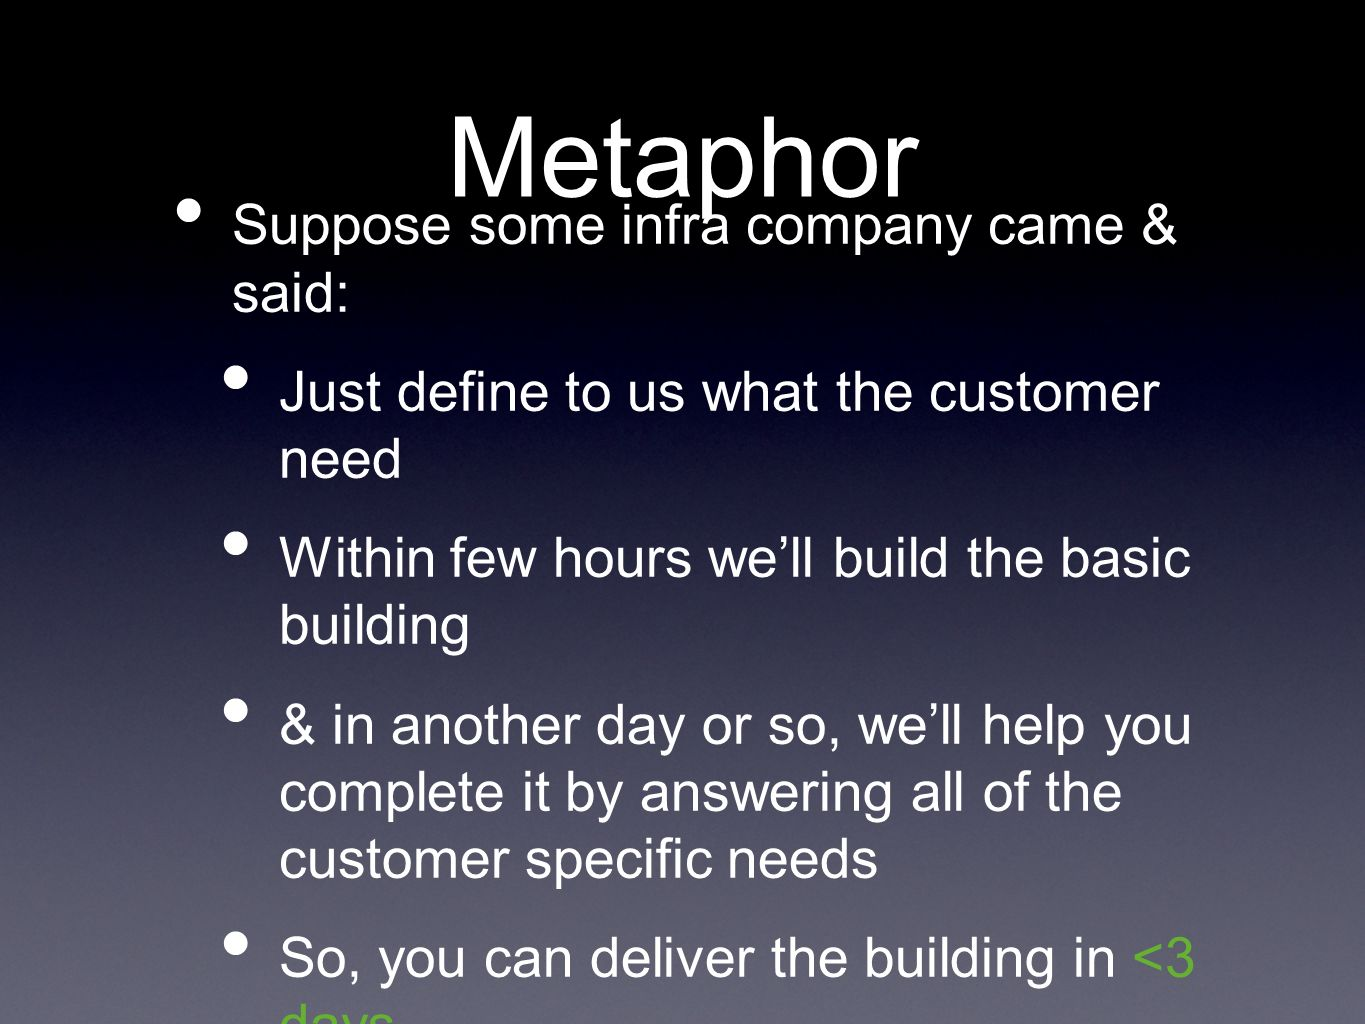 Metaphor Suppose some infra company came & said: Just define to us what the customer need Within few hours well build the basic building & in another day or so, well help you complete it by answering all of the customer specific needs So, you can deliver the building in <3 days